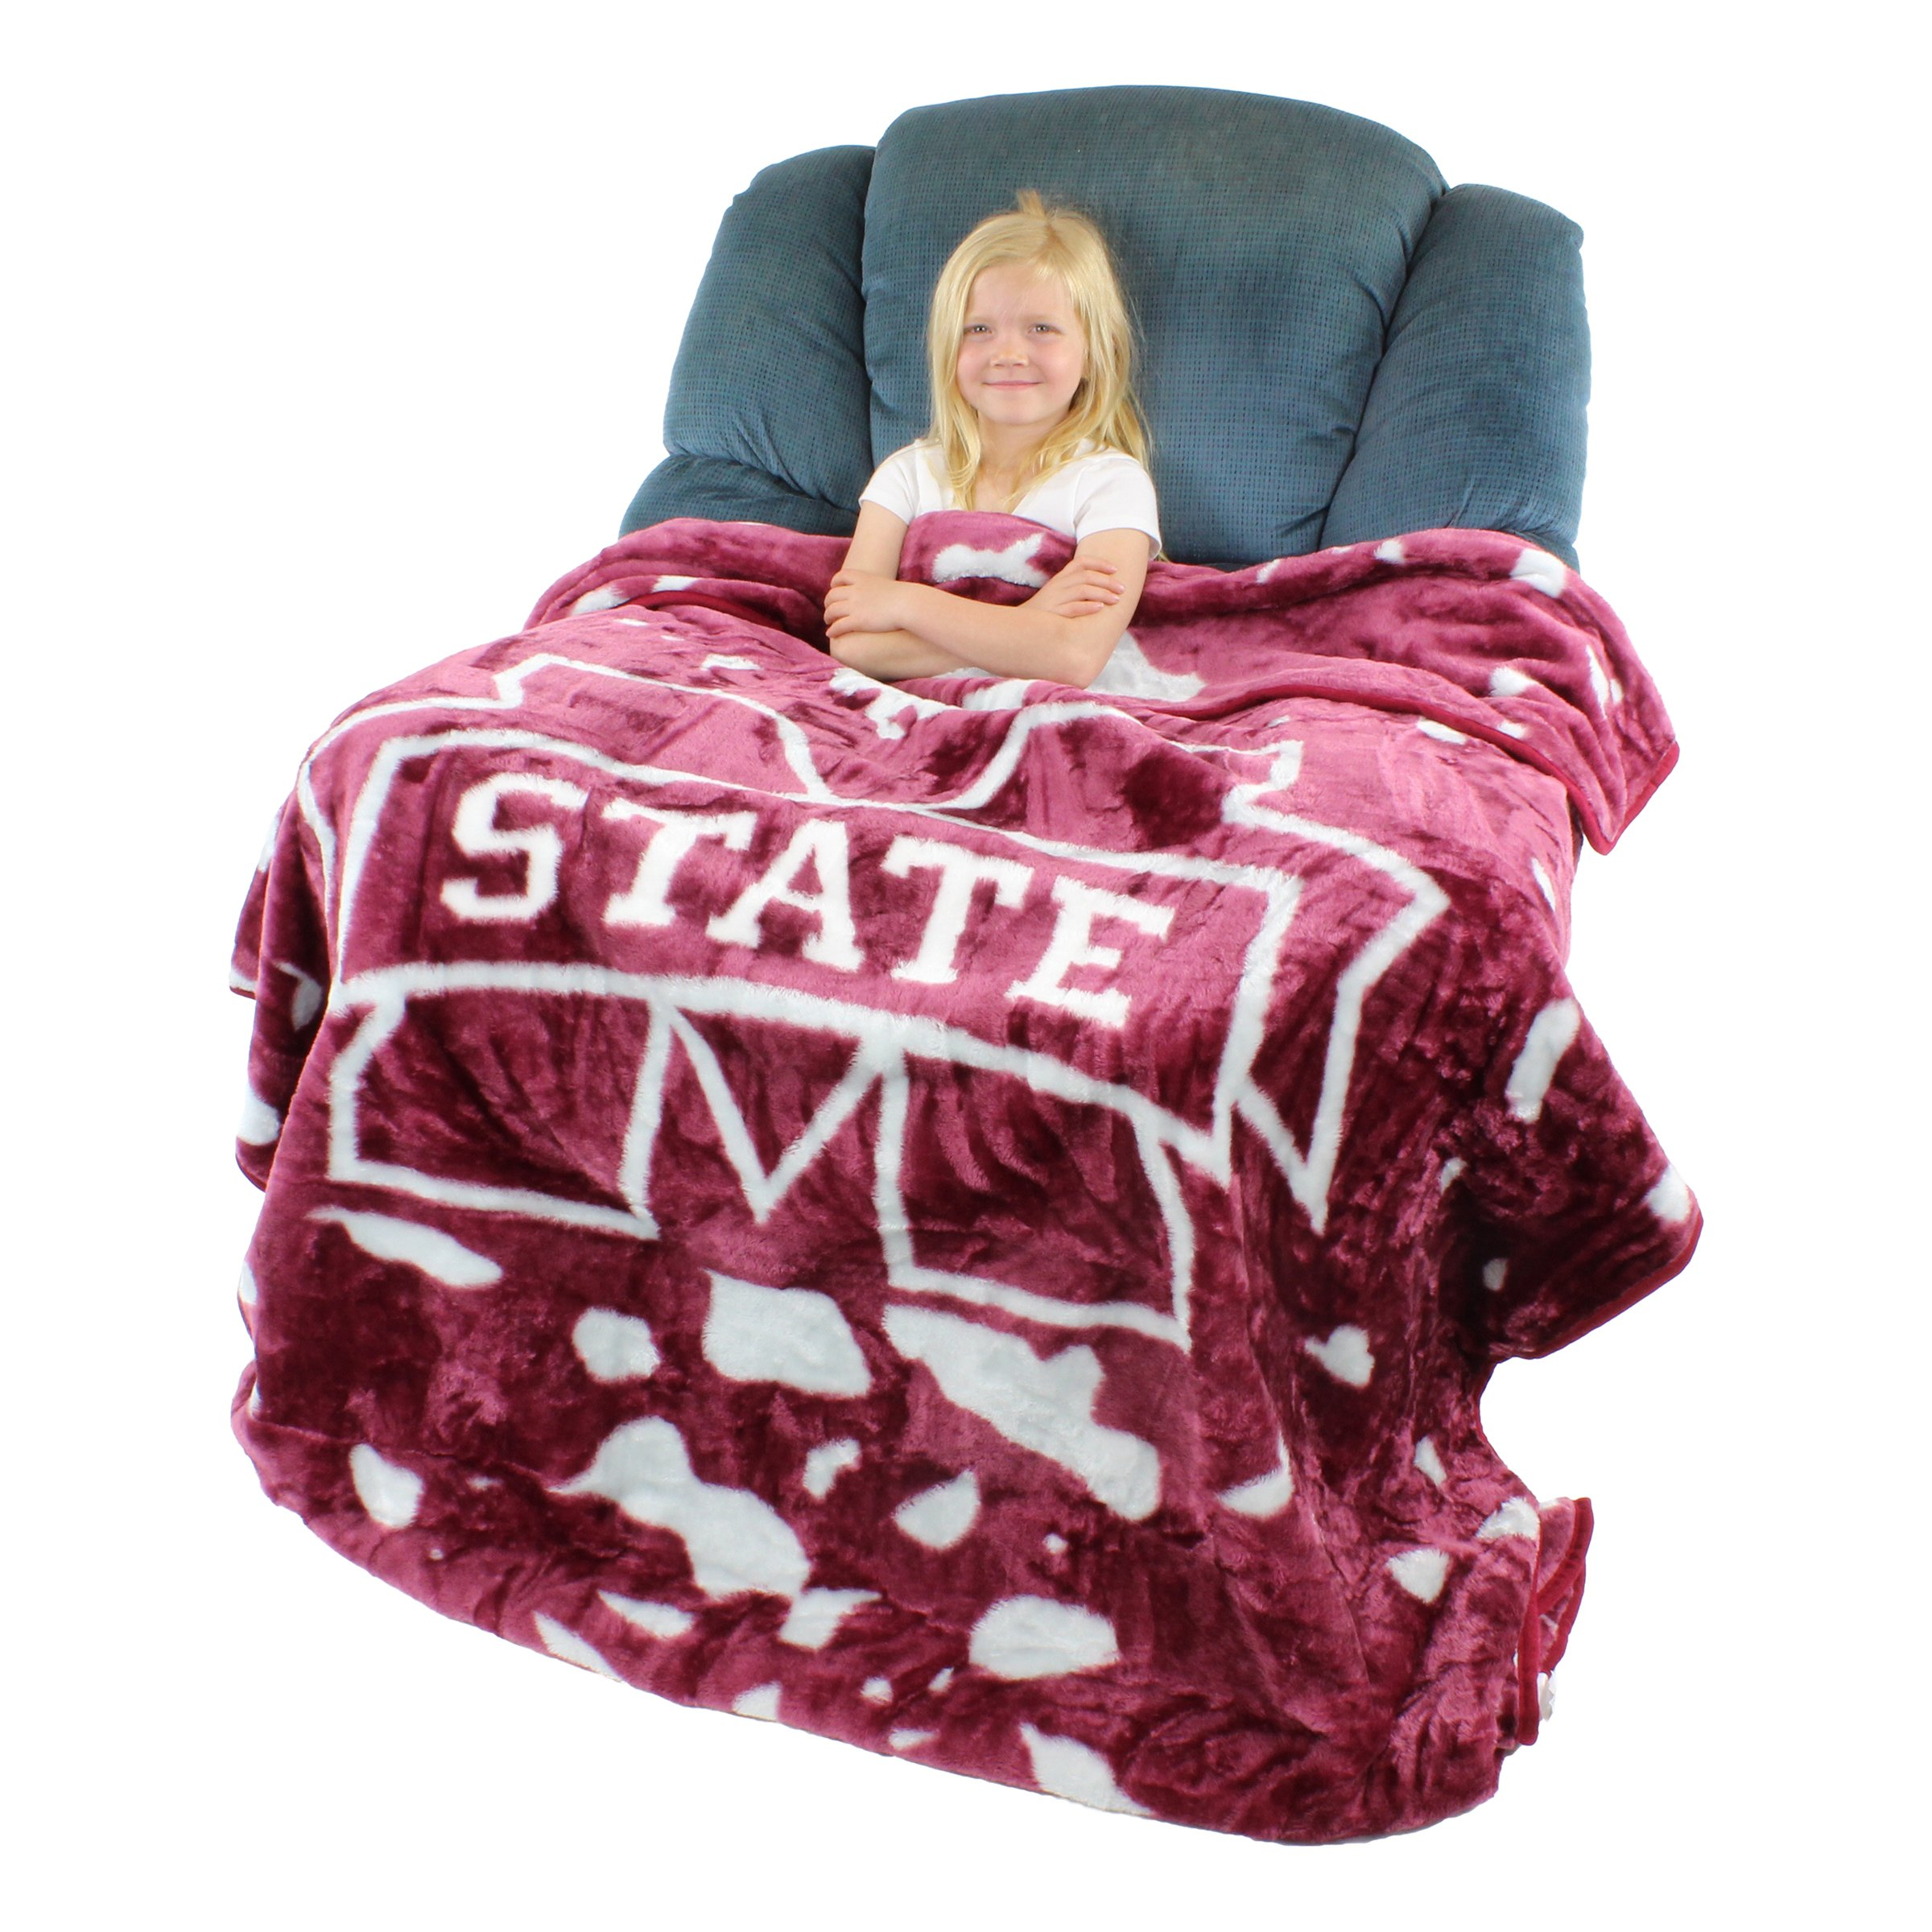 College Covers Mississippi State Bulldogs Soft Rachel Plush Throw Blanket, 63 x 86''